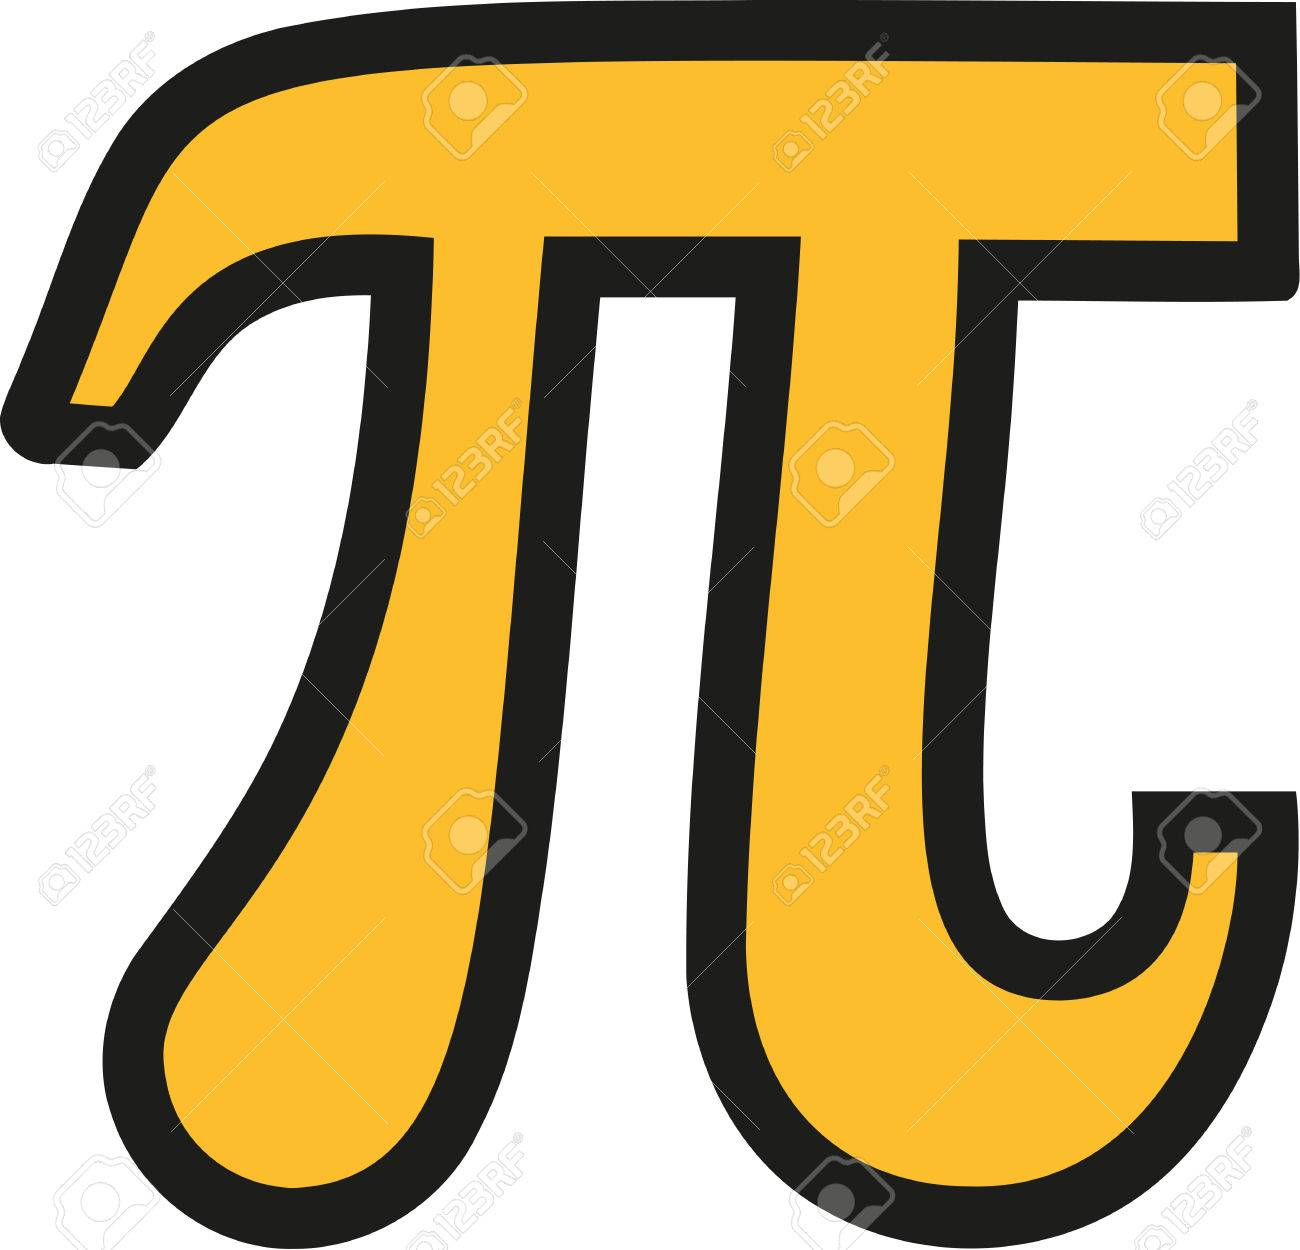 Yellow Pi Symbol With Black Outline Royalty Free Cliparts Vectors